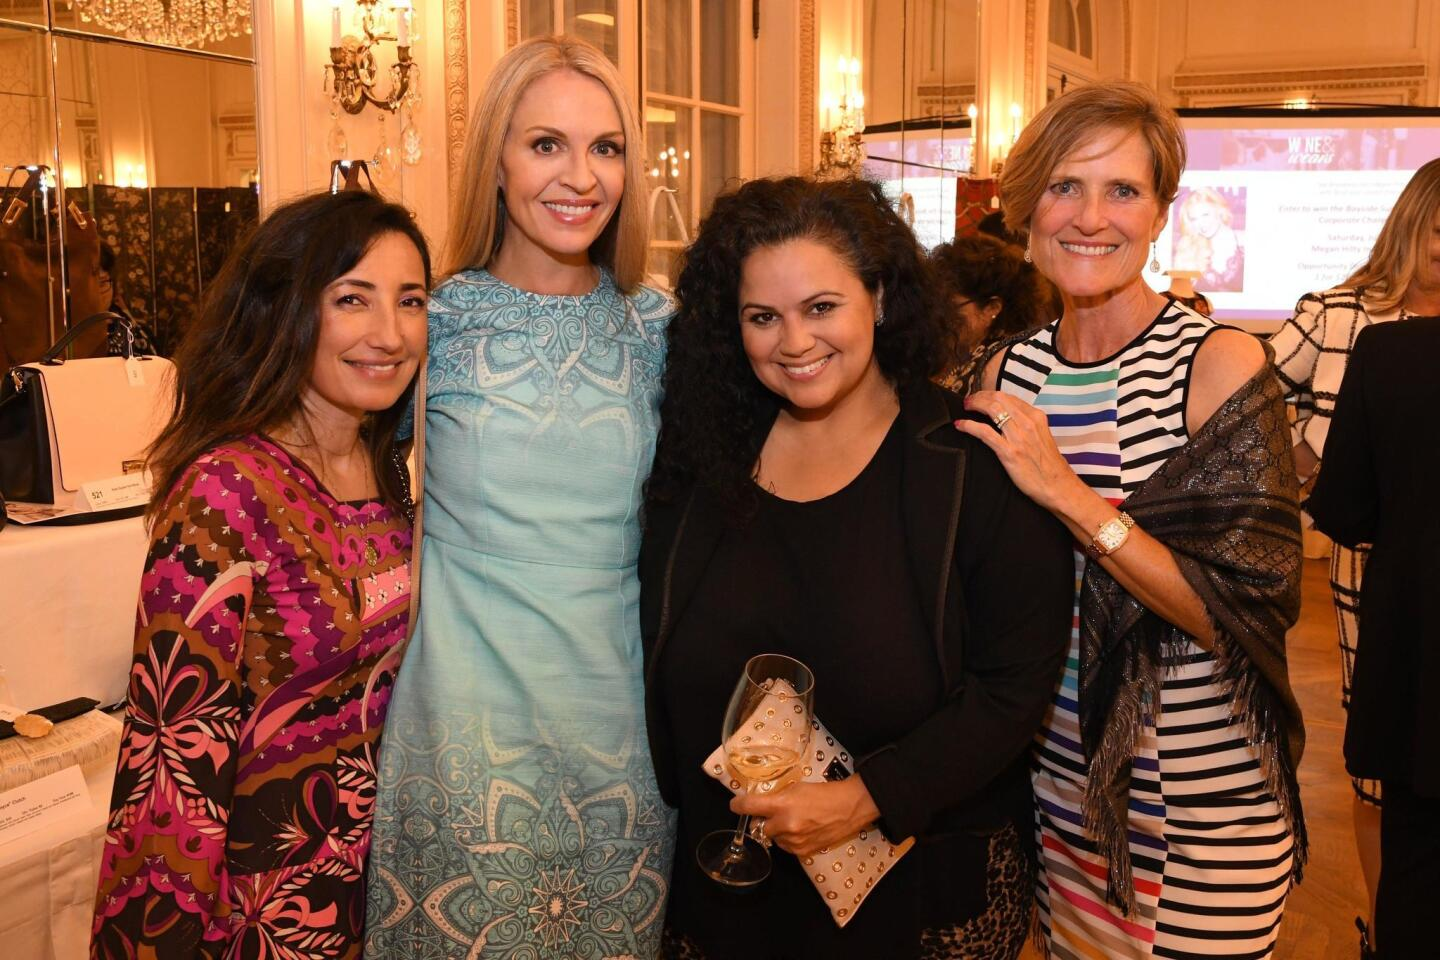 'Wine & Wears' presented by Symphony Notables